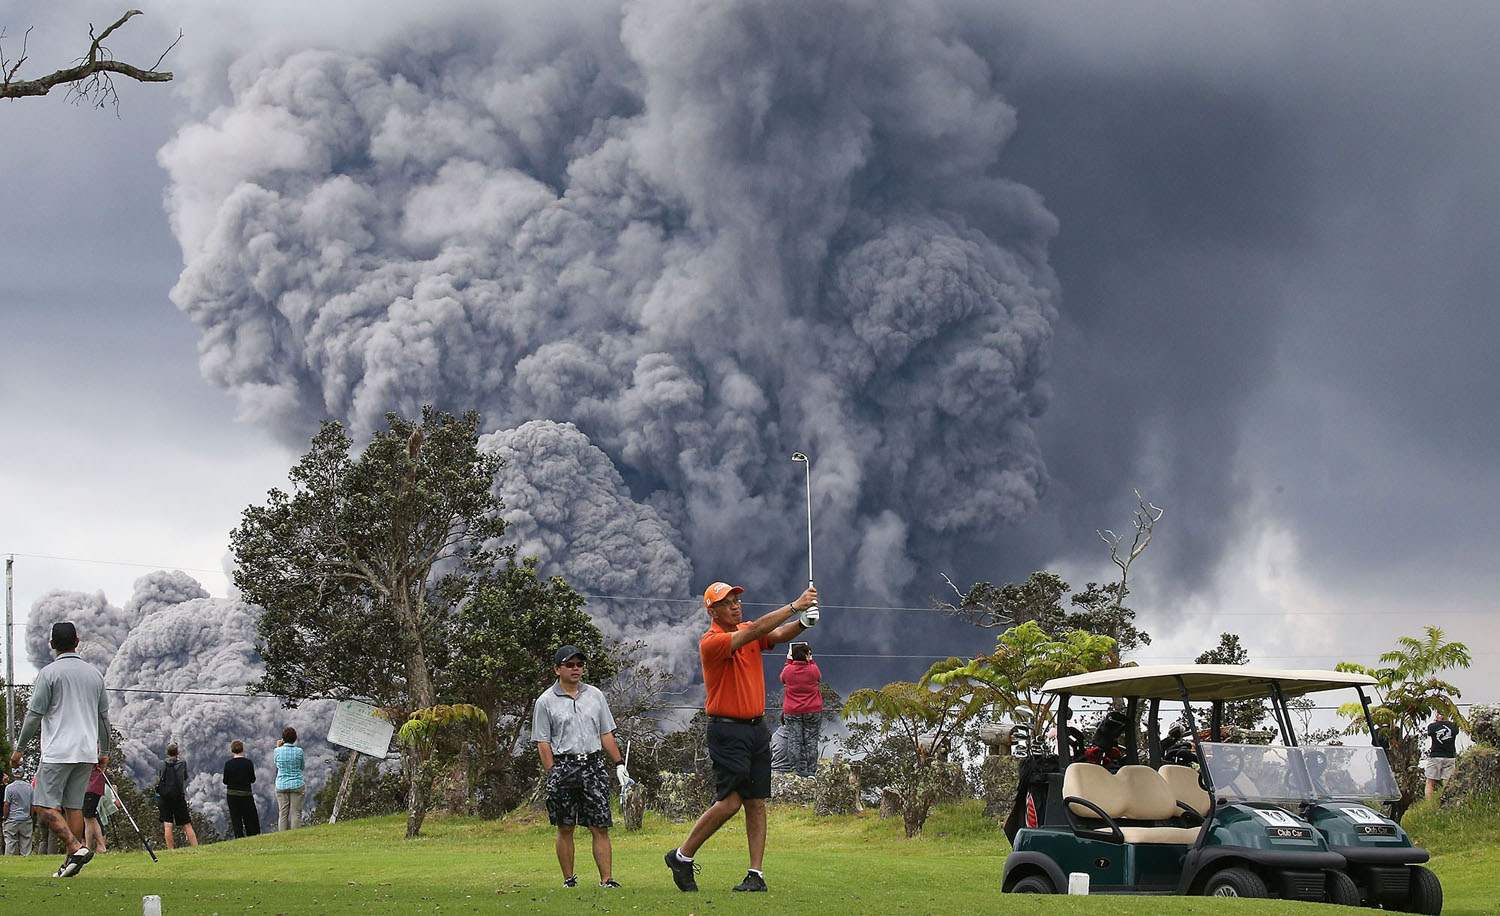 Kilauea Volcano erupts as people continue playing golf